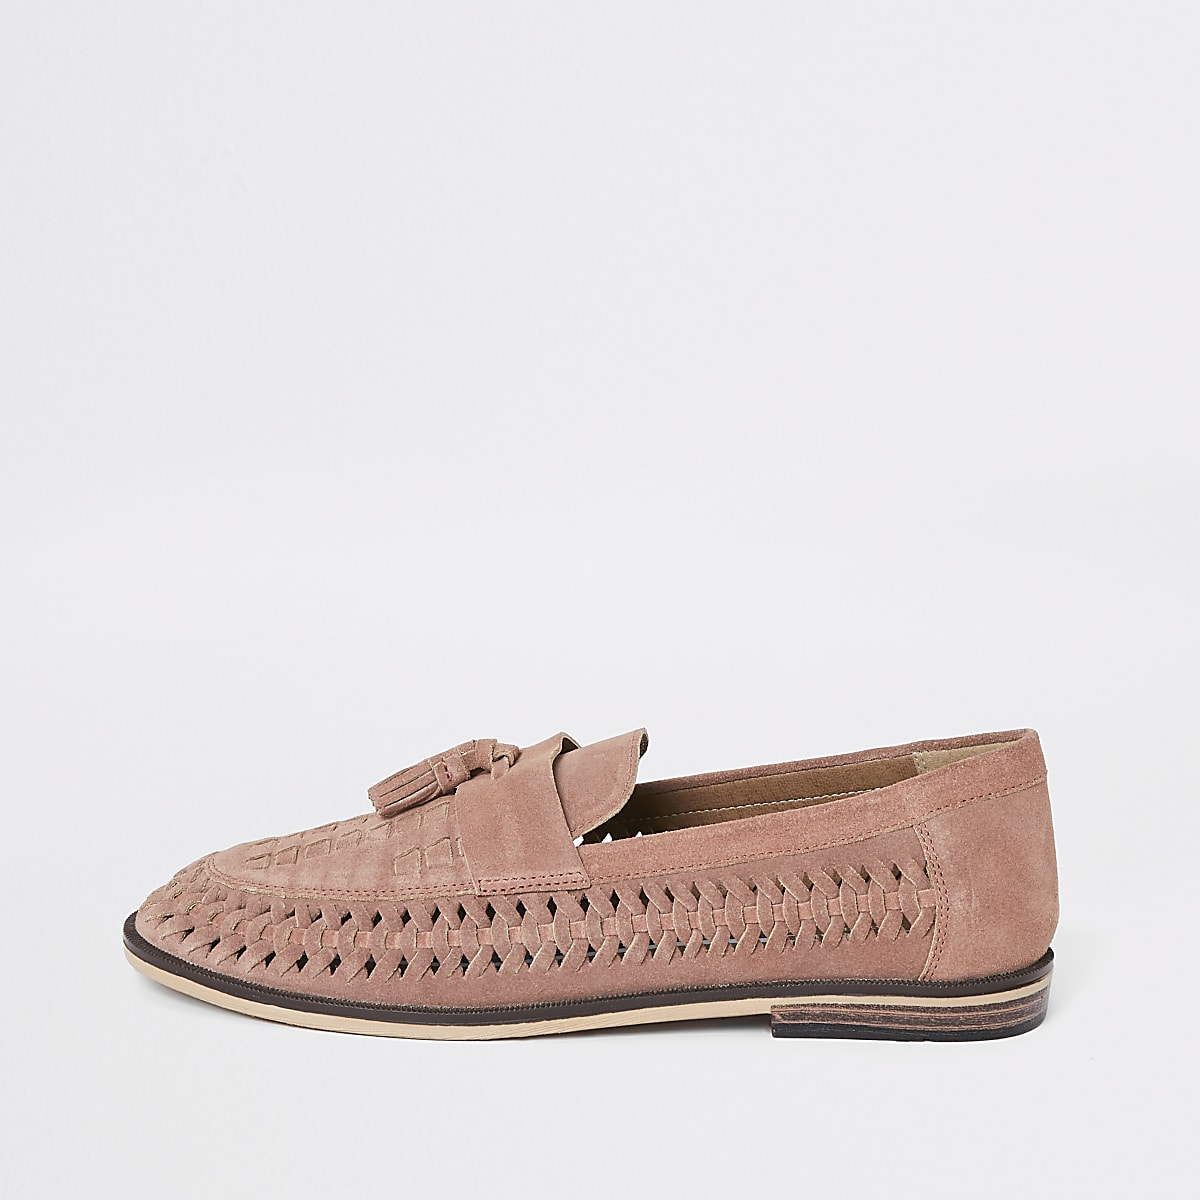 1e9b7369a1570 Pink suede woven tassel loafers - Shoes - Shoes & Boots - men